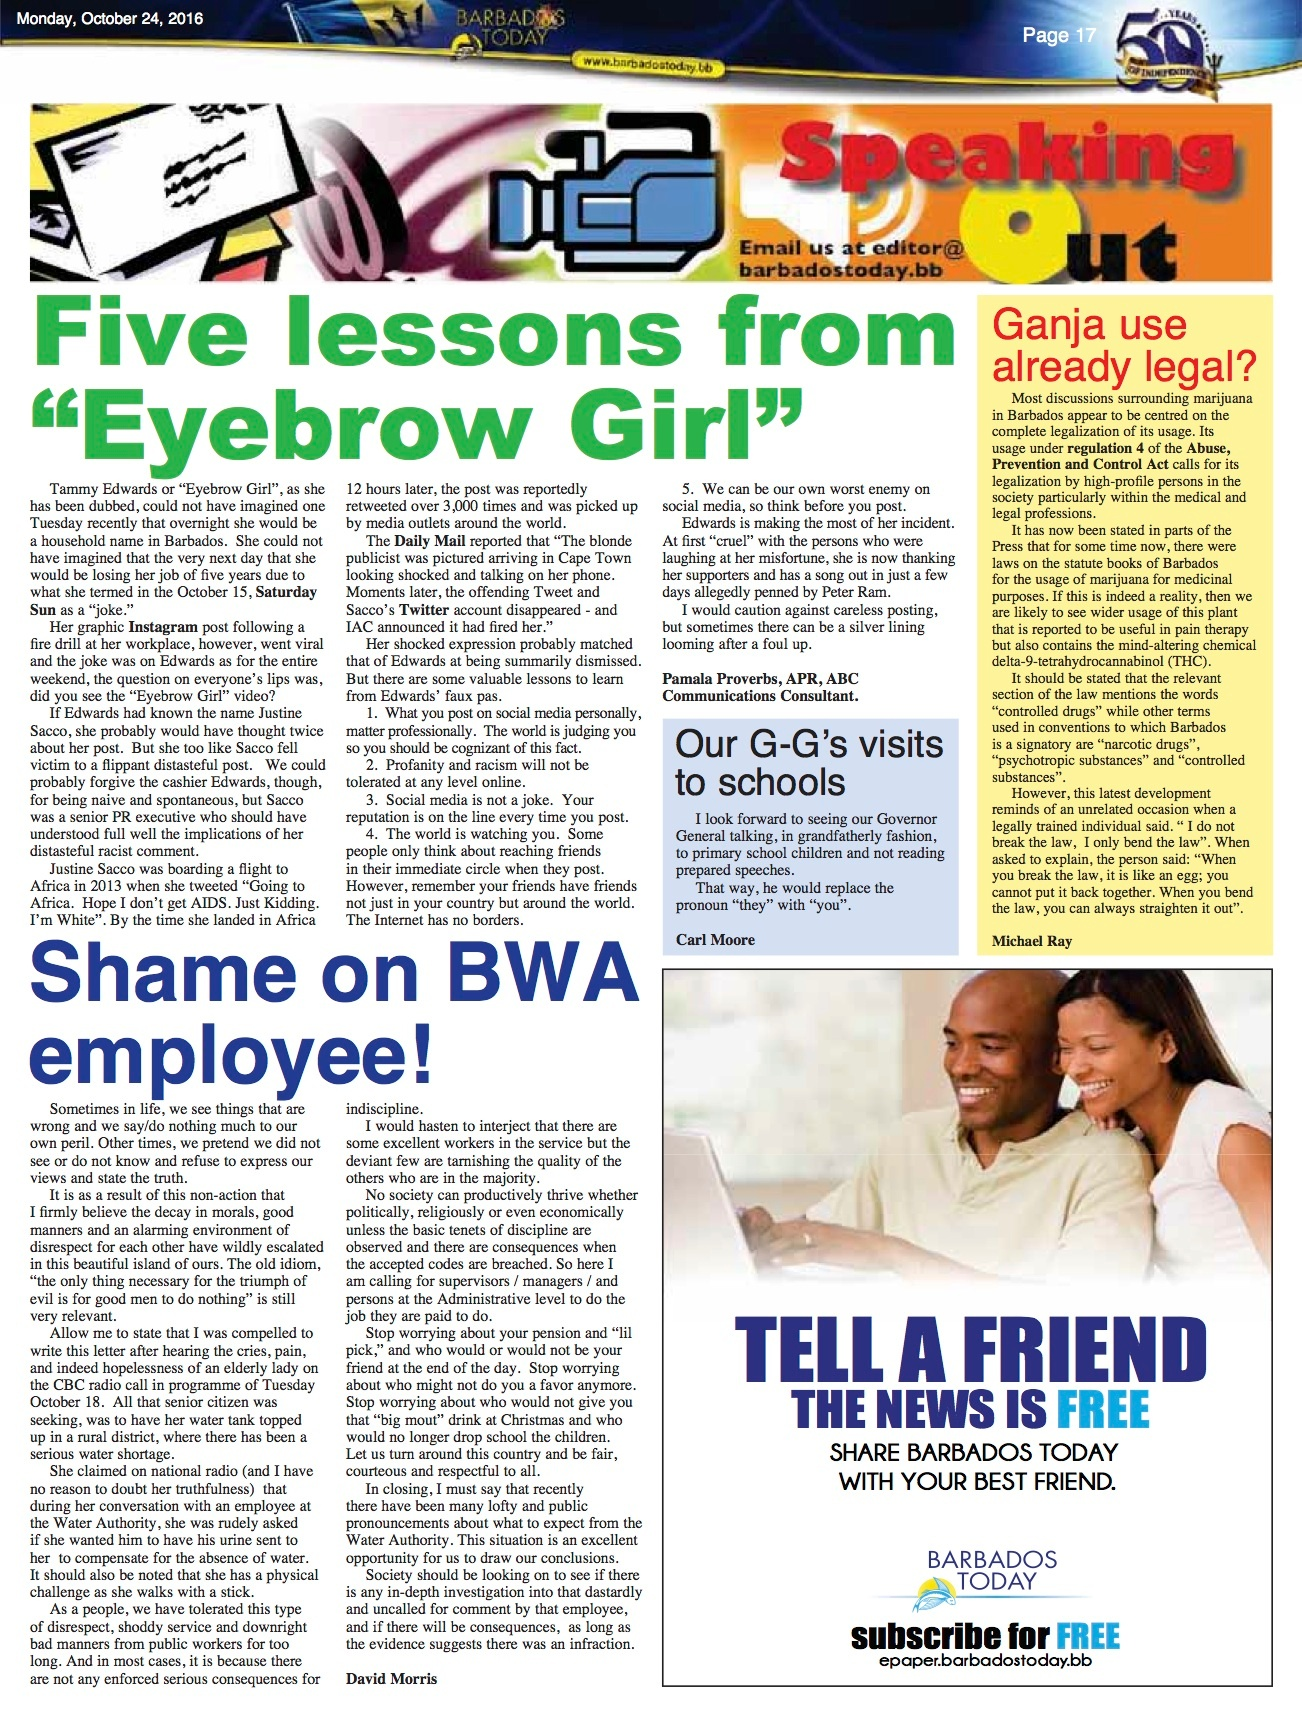 2016-10-24-Barbados Today-Five lessons from eyebrow girl.jpg